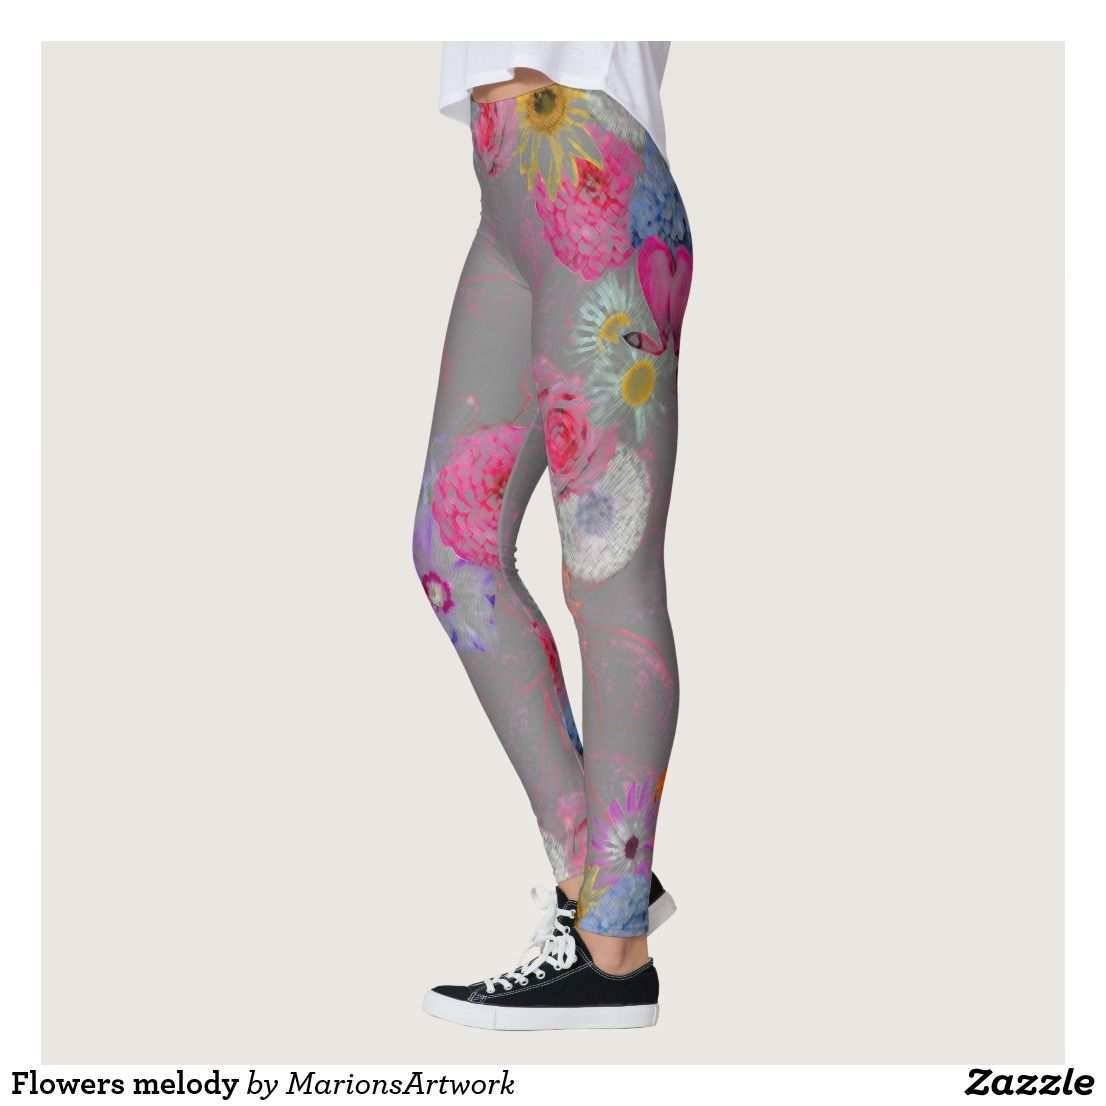 Flowers Melody Leggings Zazzle De Beste Leggings Bunte Leggings Kleidung Accessoires